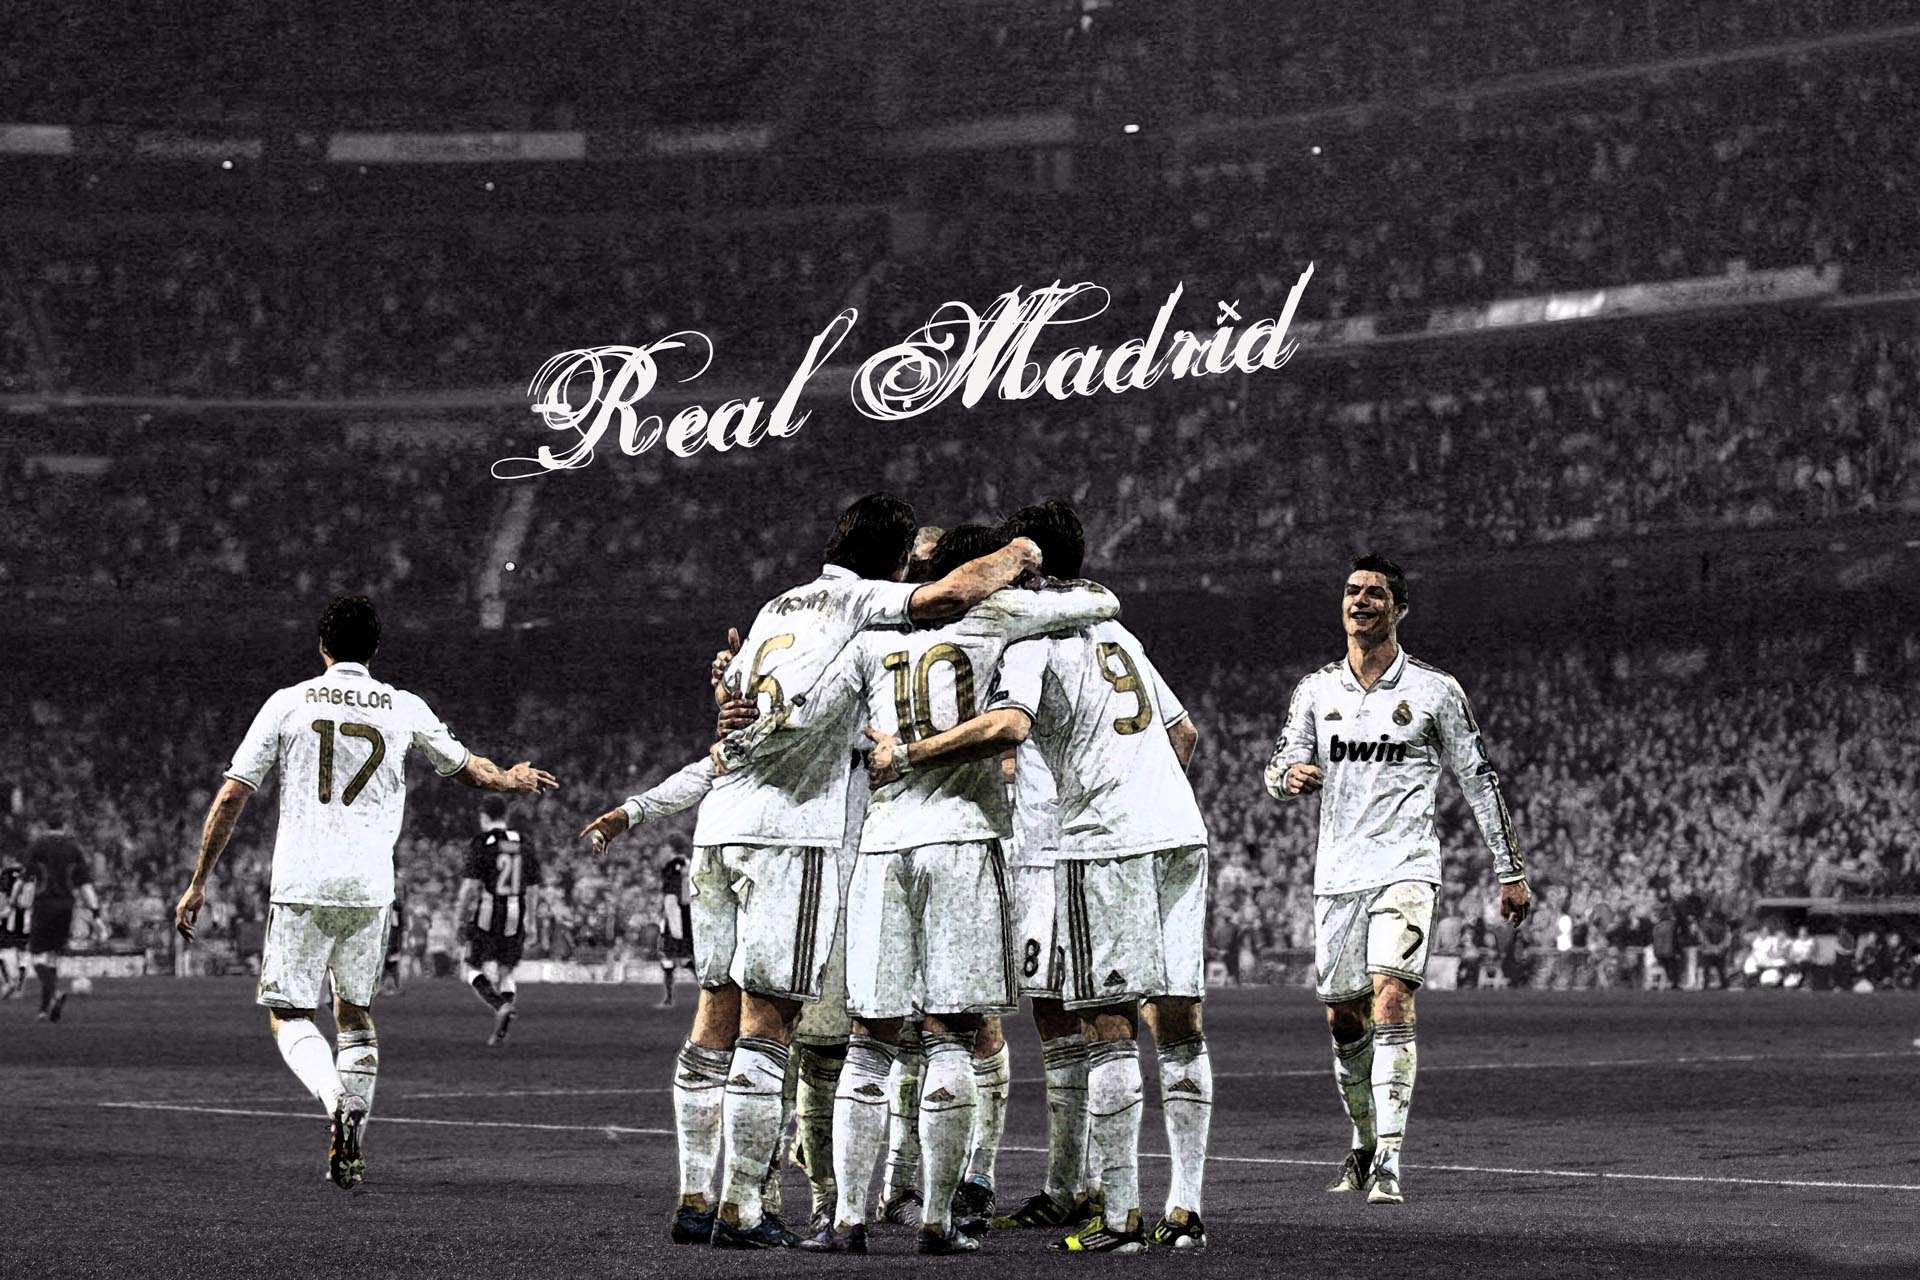 best-ideas-about-Real-madrid-on-Pinterest-Real-wallpaper-wpc5802776